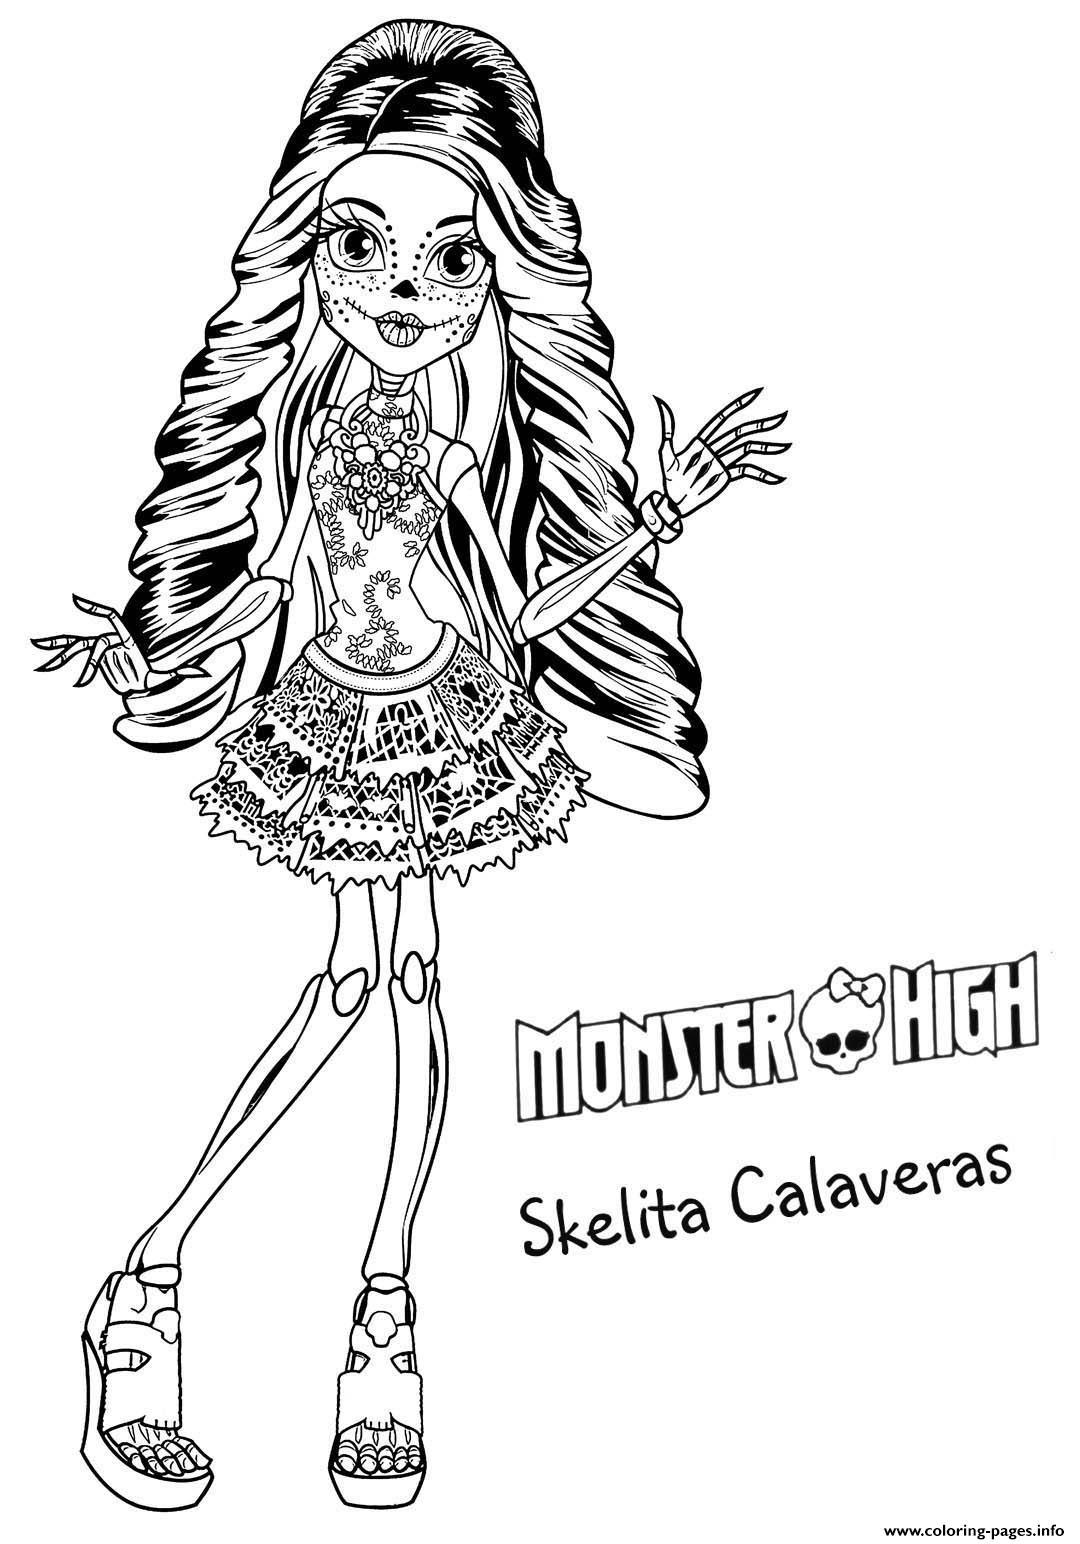 Halloween Monster High Coloring